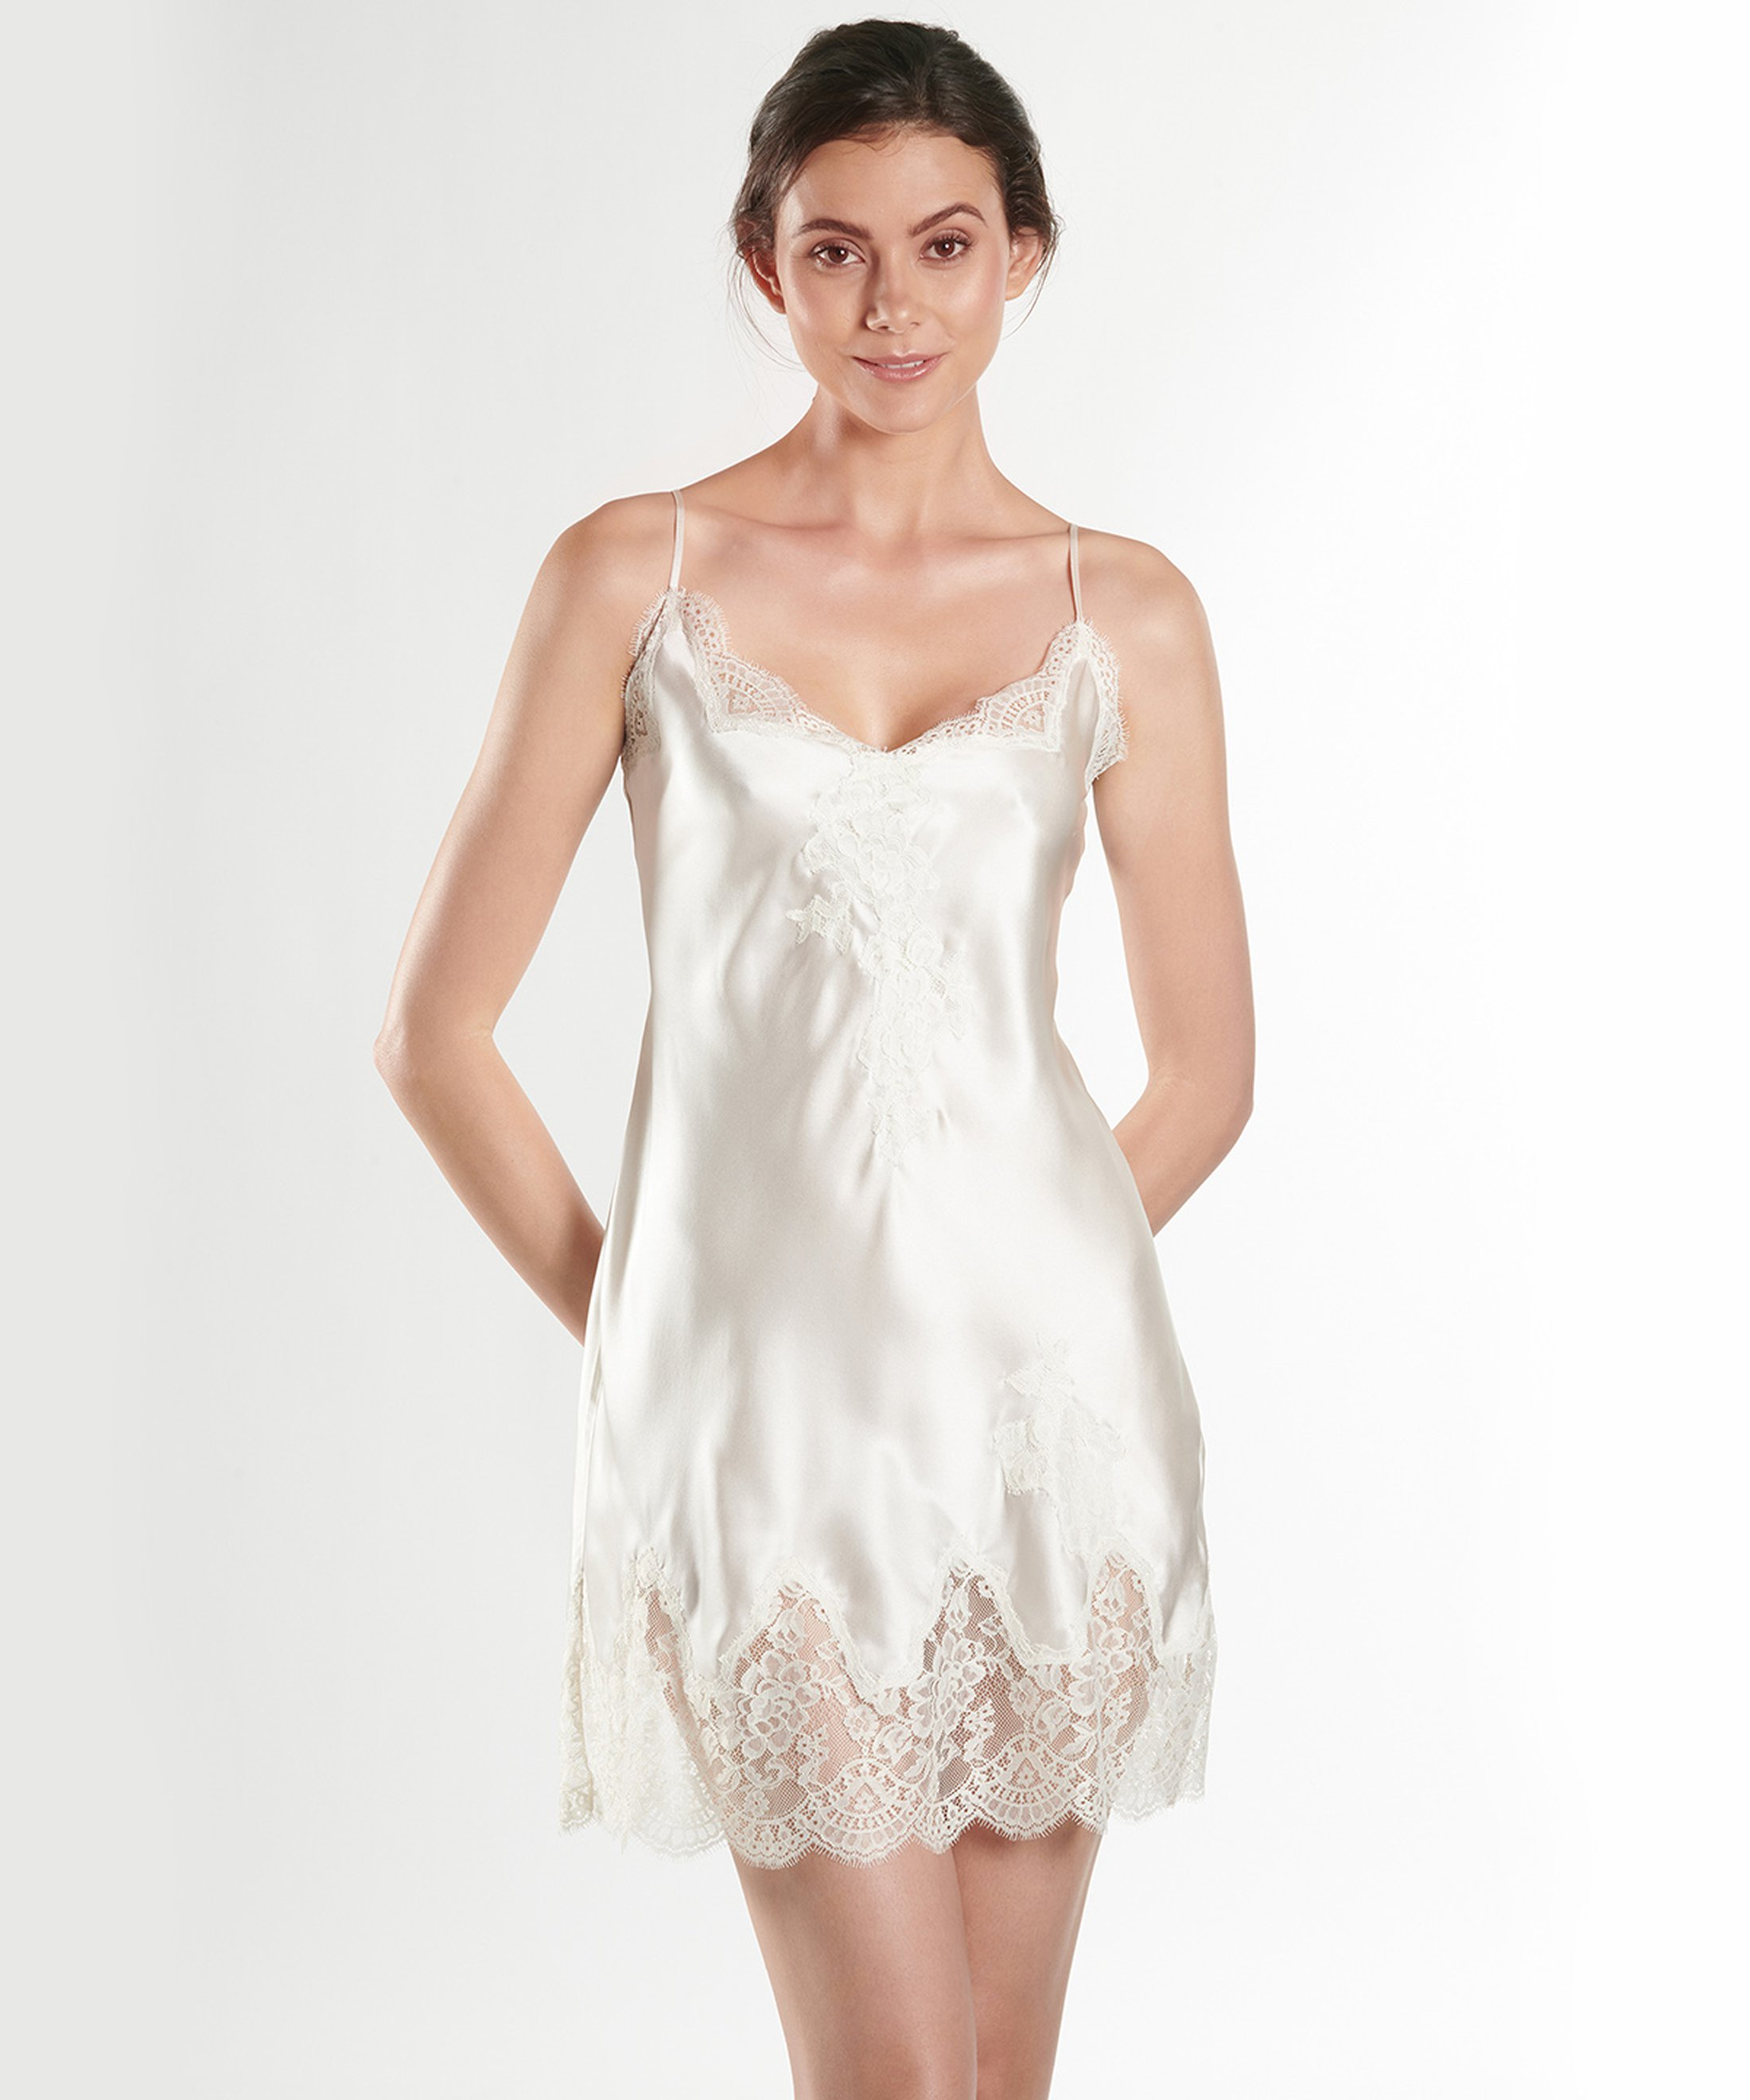 SOIE D'AMOUR Silk nightie Nacre | Aubade